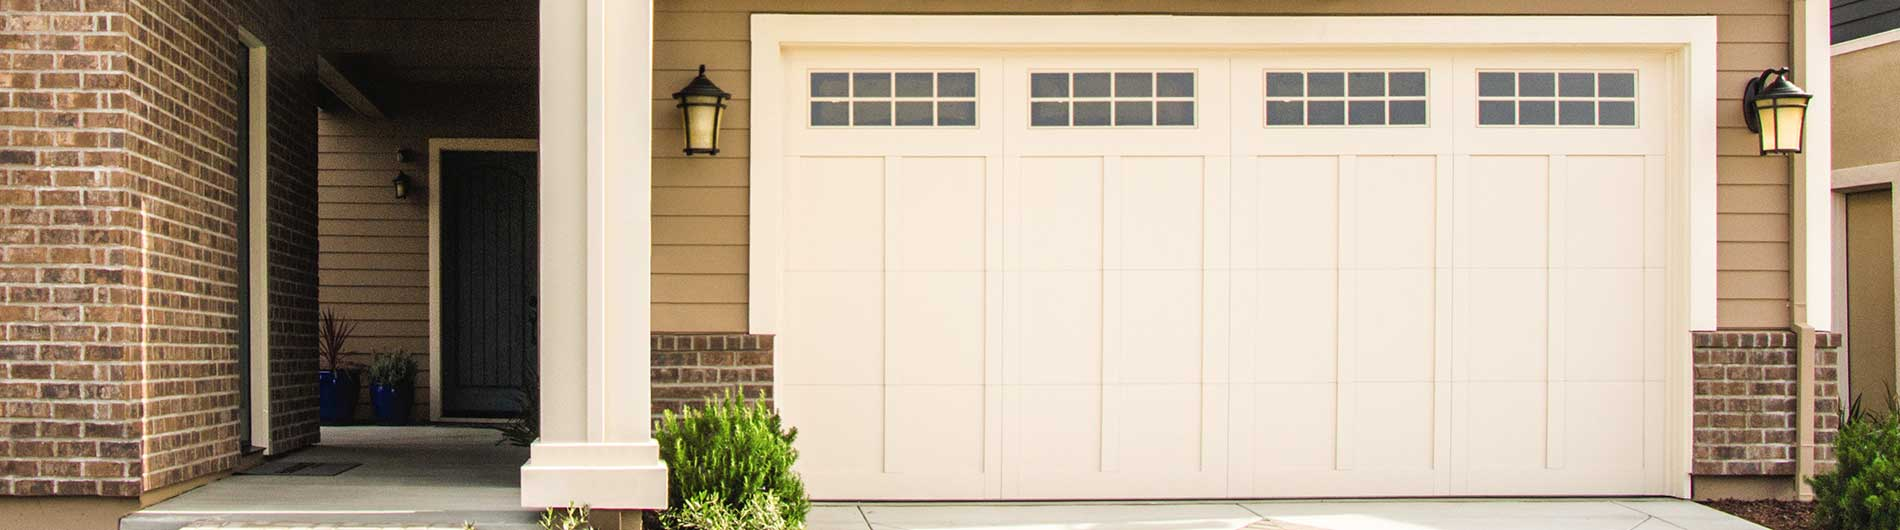 Wayne dalton garage door replacement panels floors for Wayne dalton garage doors